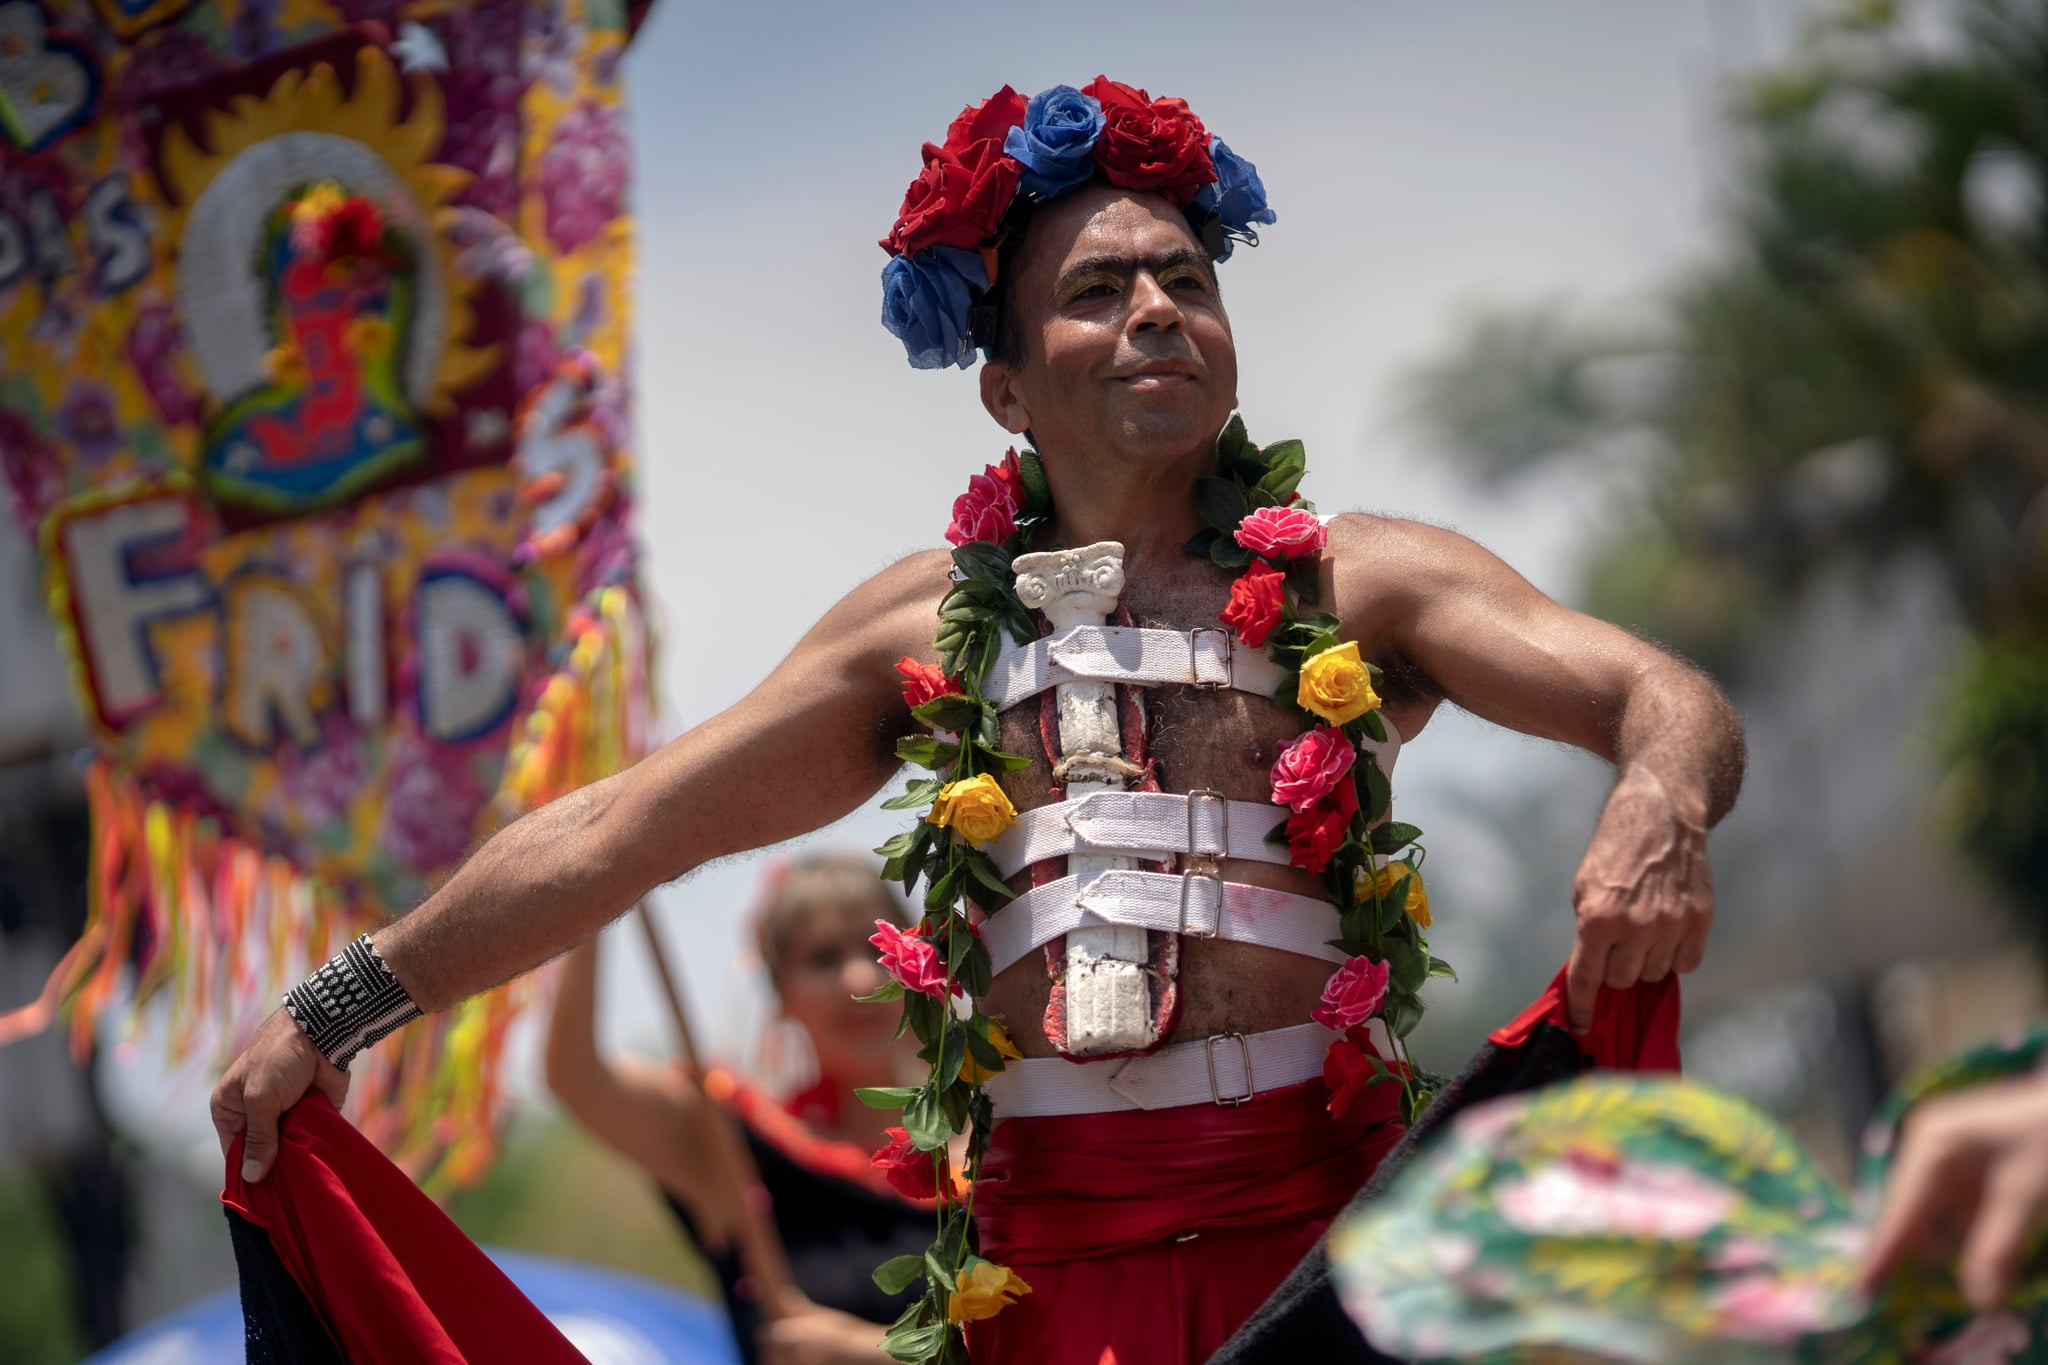 A reveller dressed as Mexican artist Frida Kalho takes part in the street carnival parade of the Bloco das Fridas at the XV Square in Rio de Janeiro, Brazil, on January 5, 2019, during the unofficial opening of the 2020 Carnival. (Photo by Mauro PIMENTEL / AFP) (Photo by MAURO PIMENTEL/AFP via Getty Images)